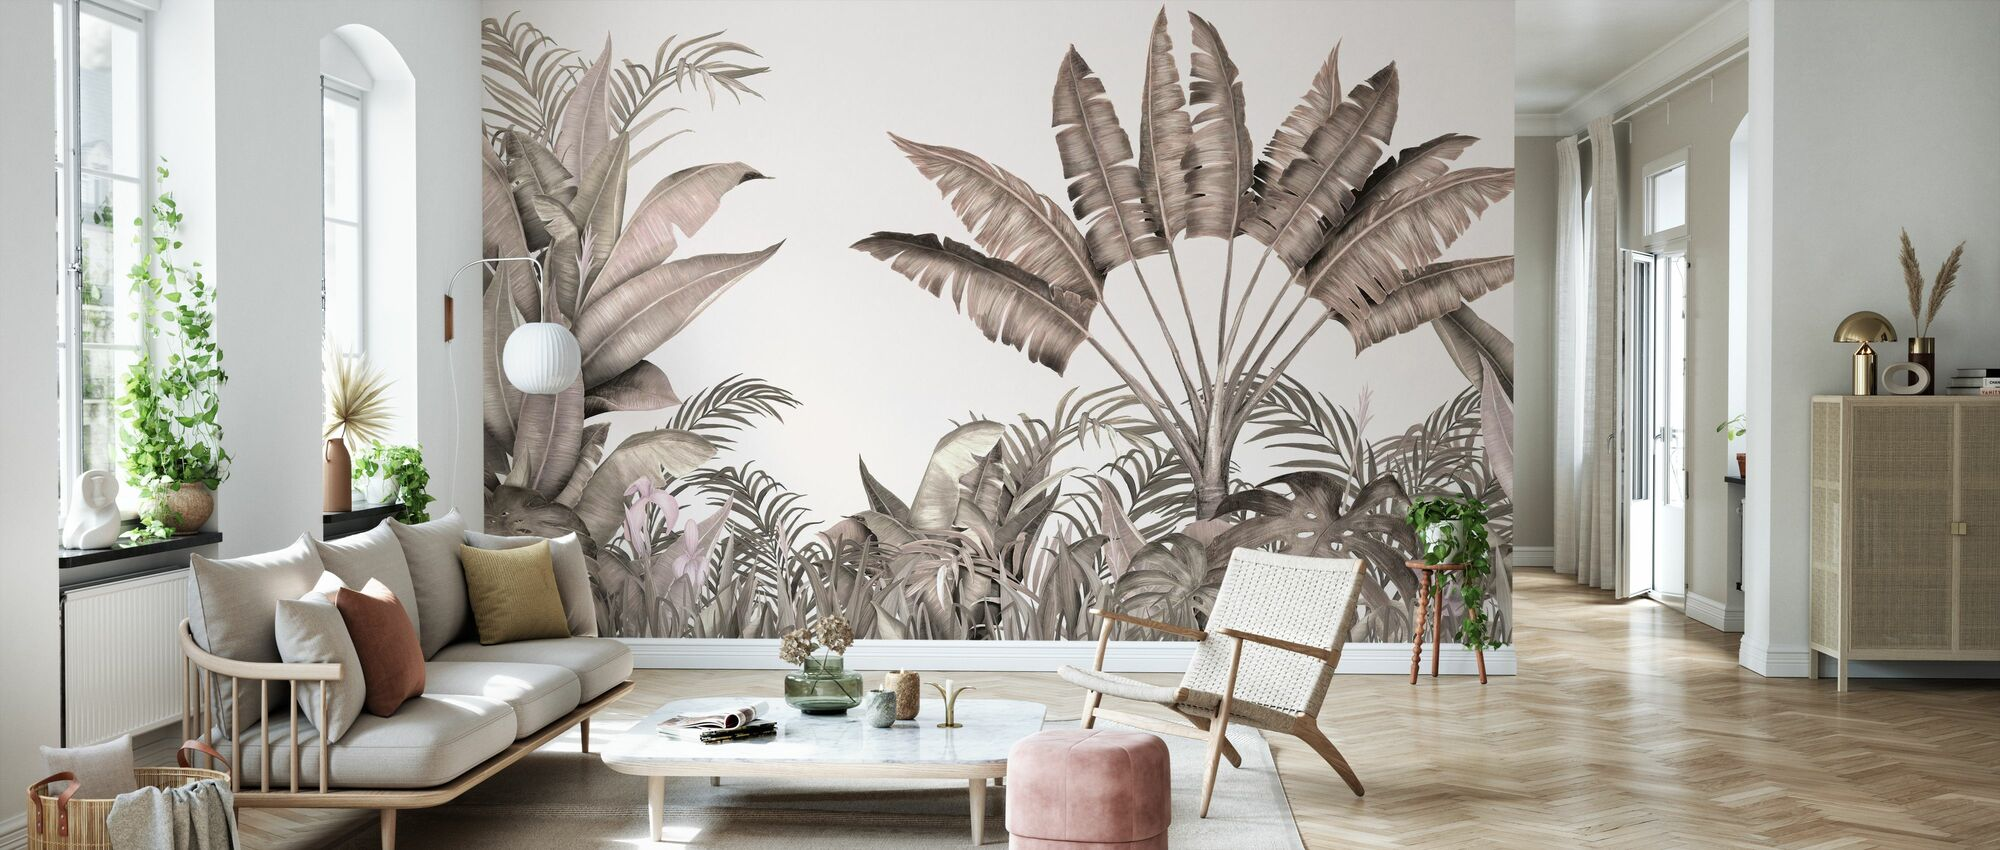 Tropical Humble Blush - Papel pintado - Salón